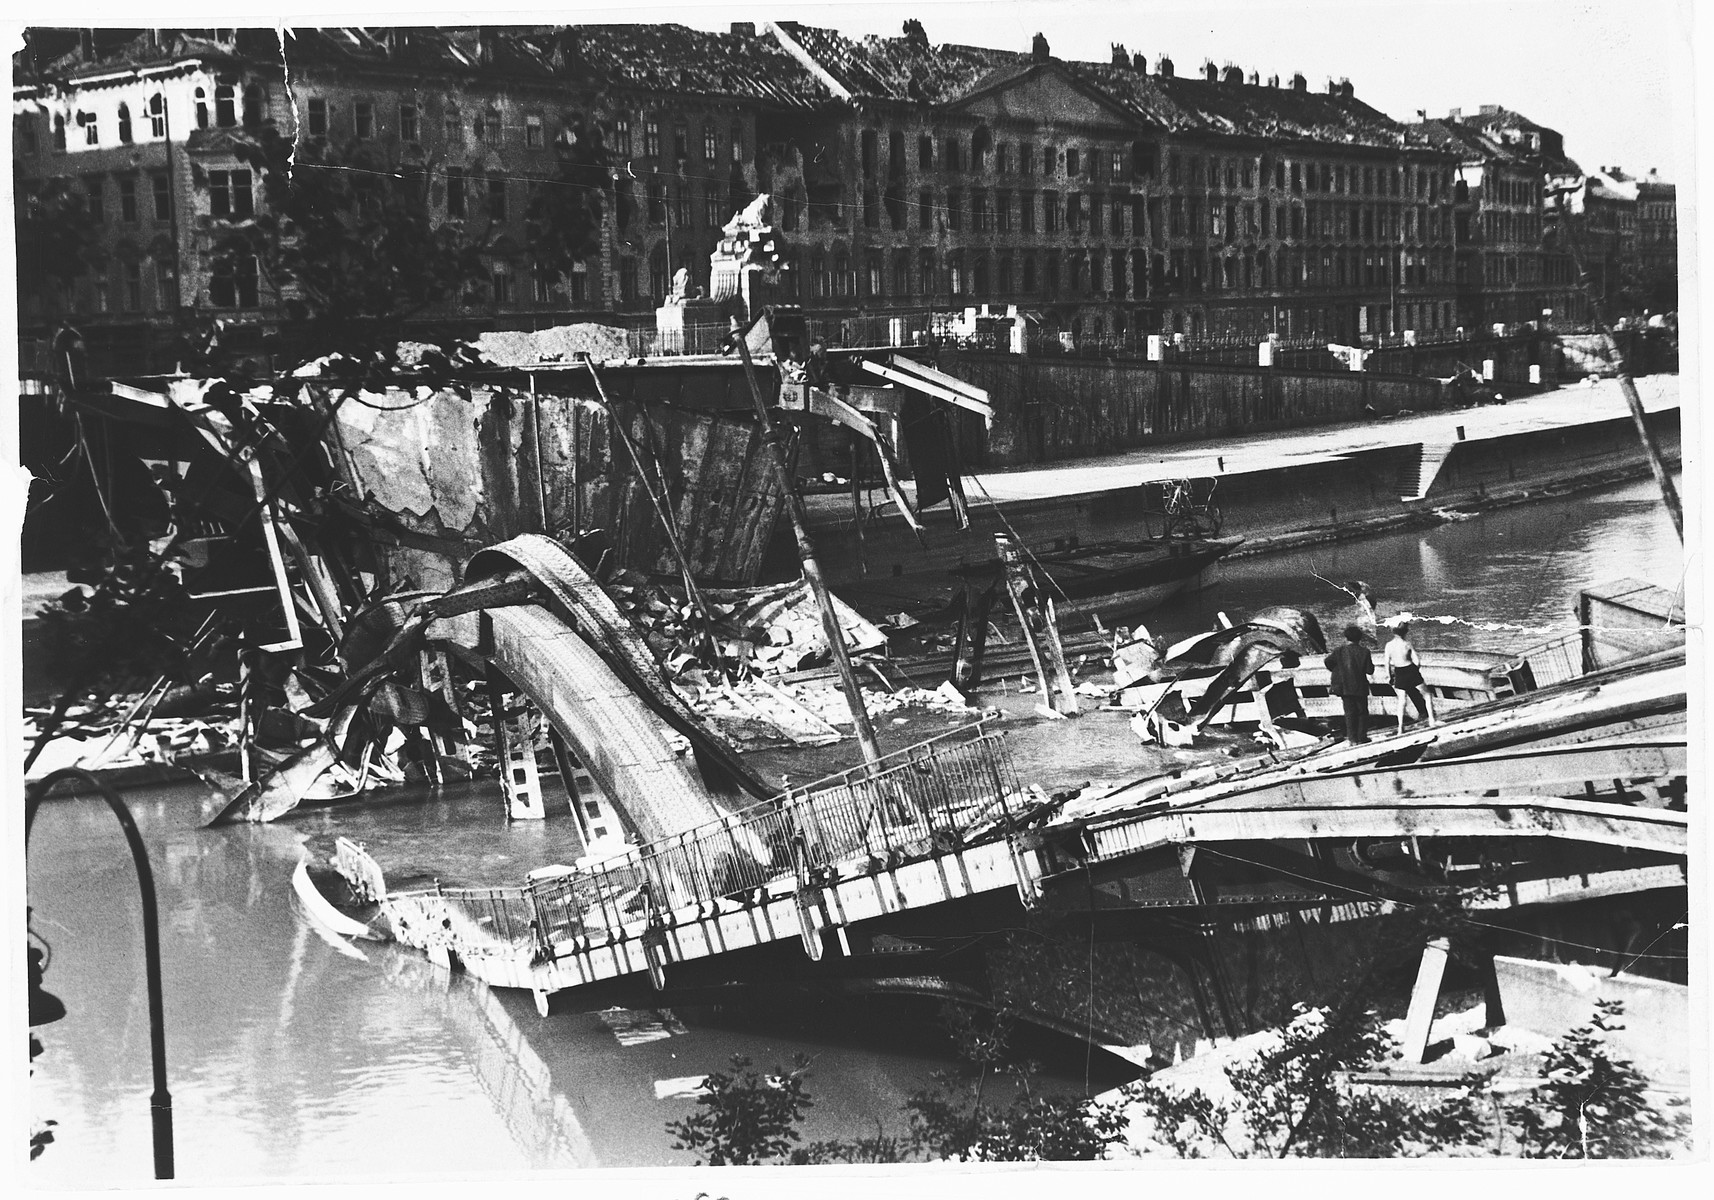 View of a bombed out bridge in Vienna, Austria.